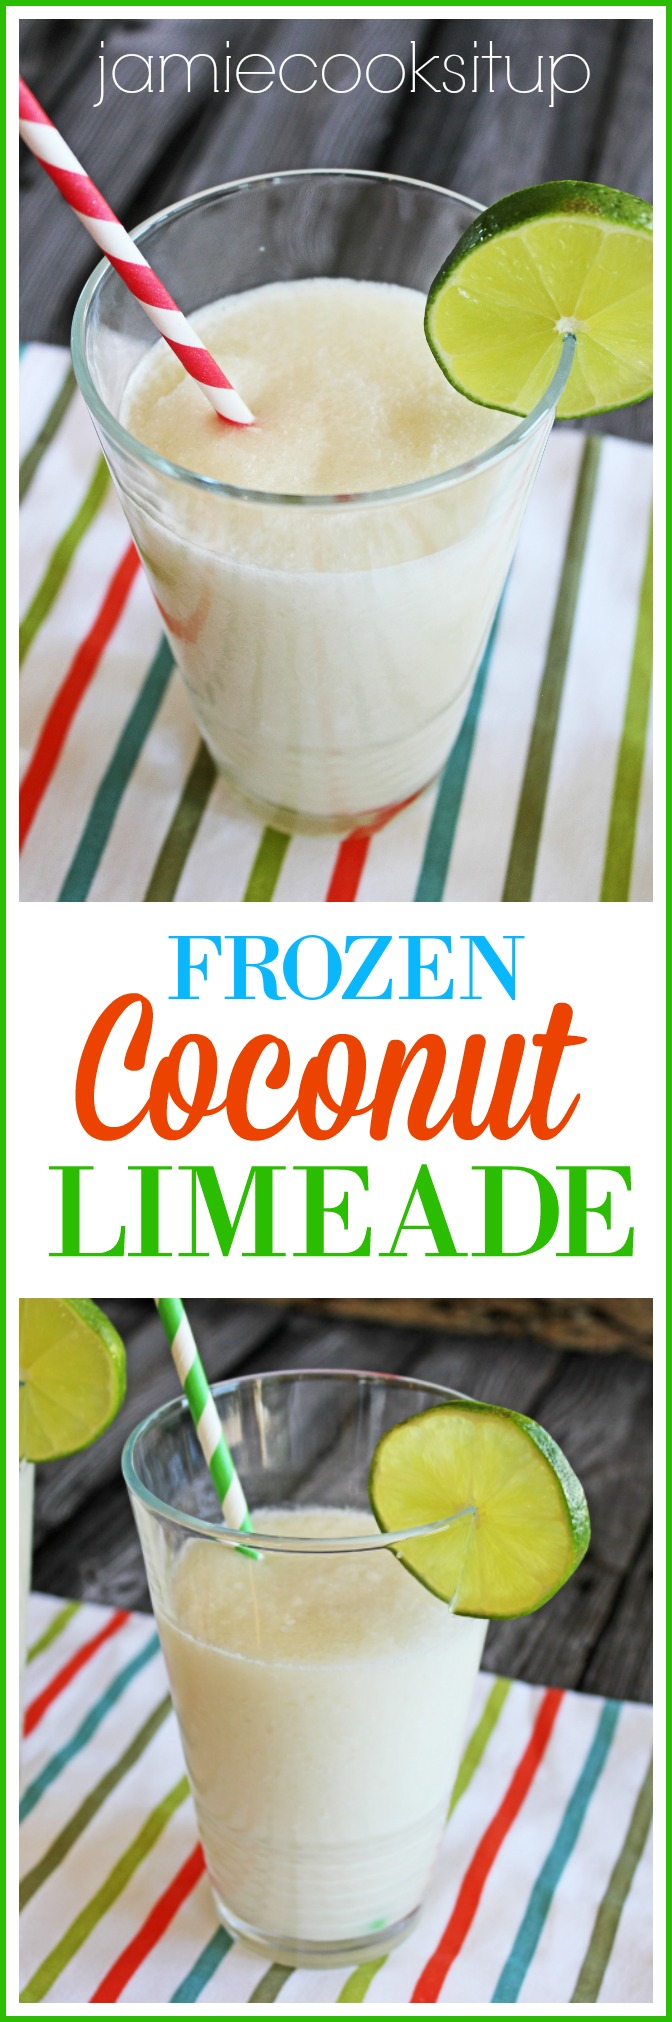 Frozen Coconut Limeade from Jamie Cooks It Up!